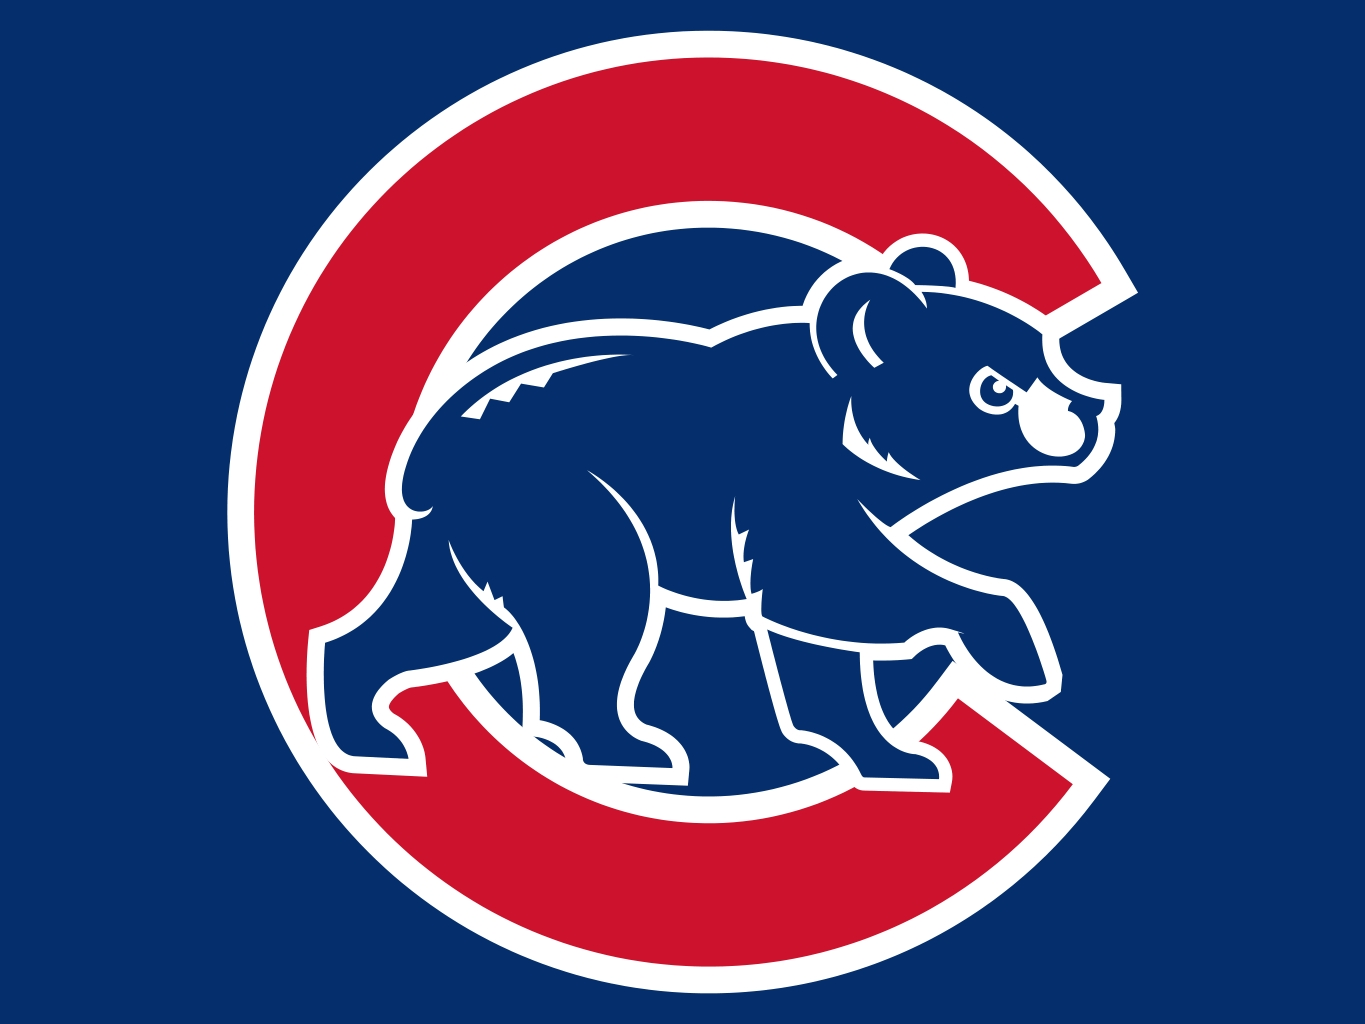 Chicago Cubs Logo Clipart - Clipart Kid